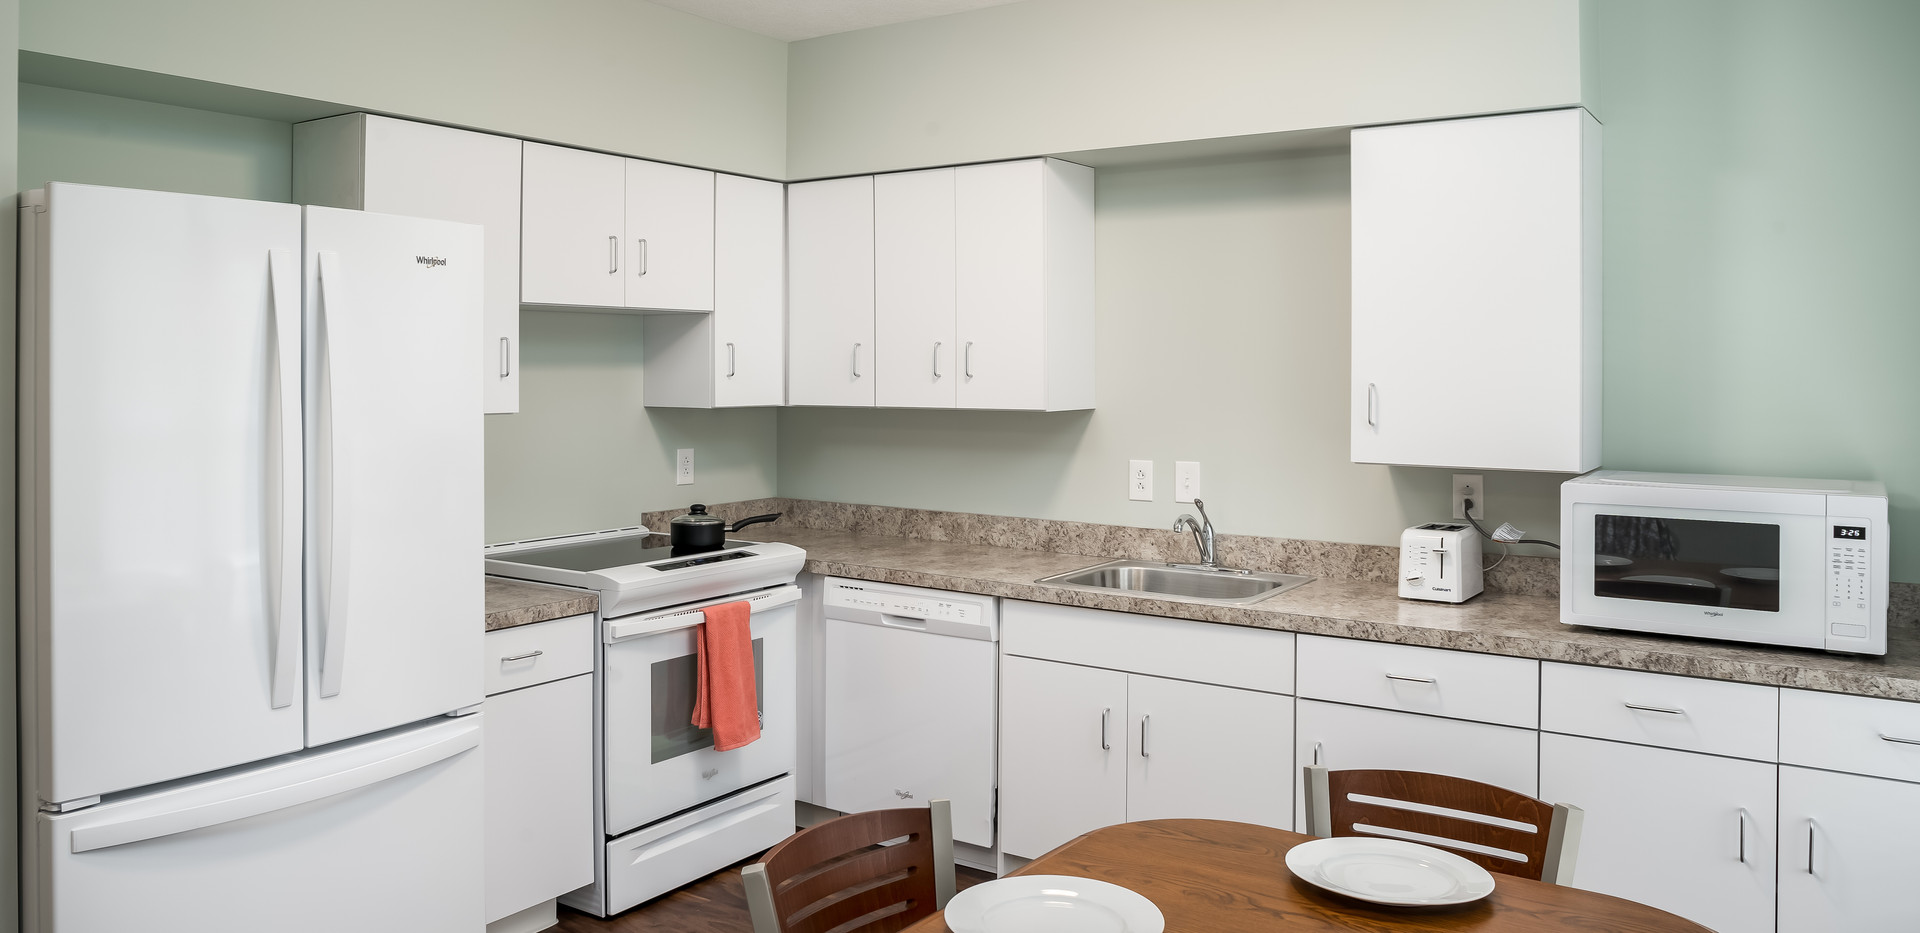 Transitional Apartment - Kitchen/Dining